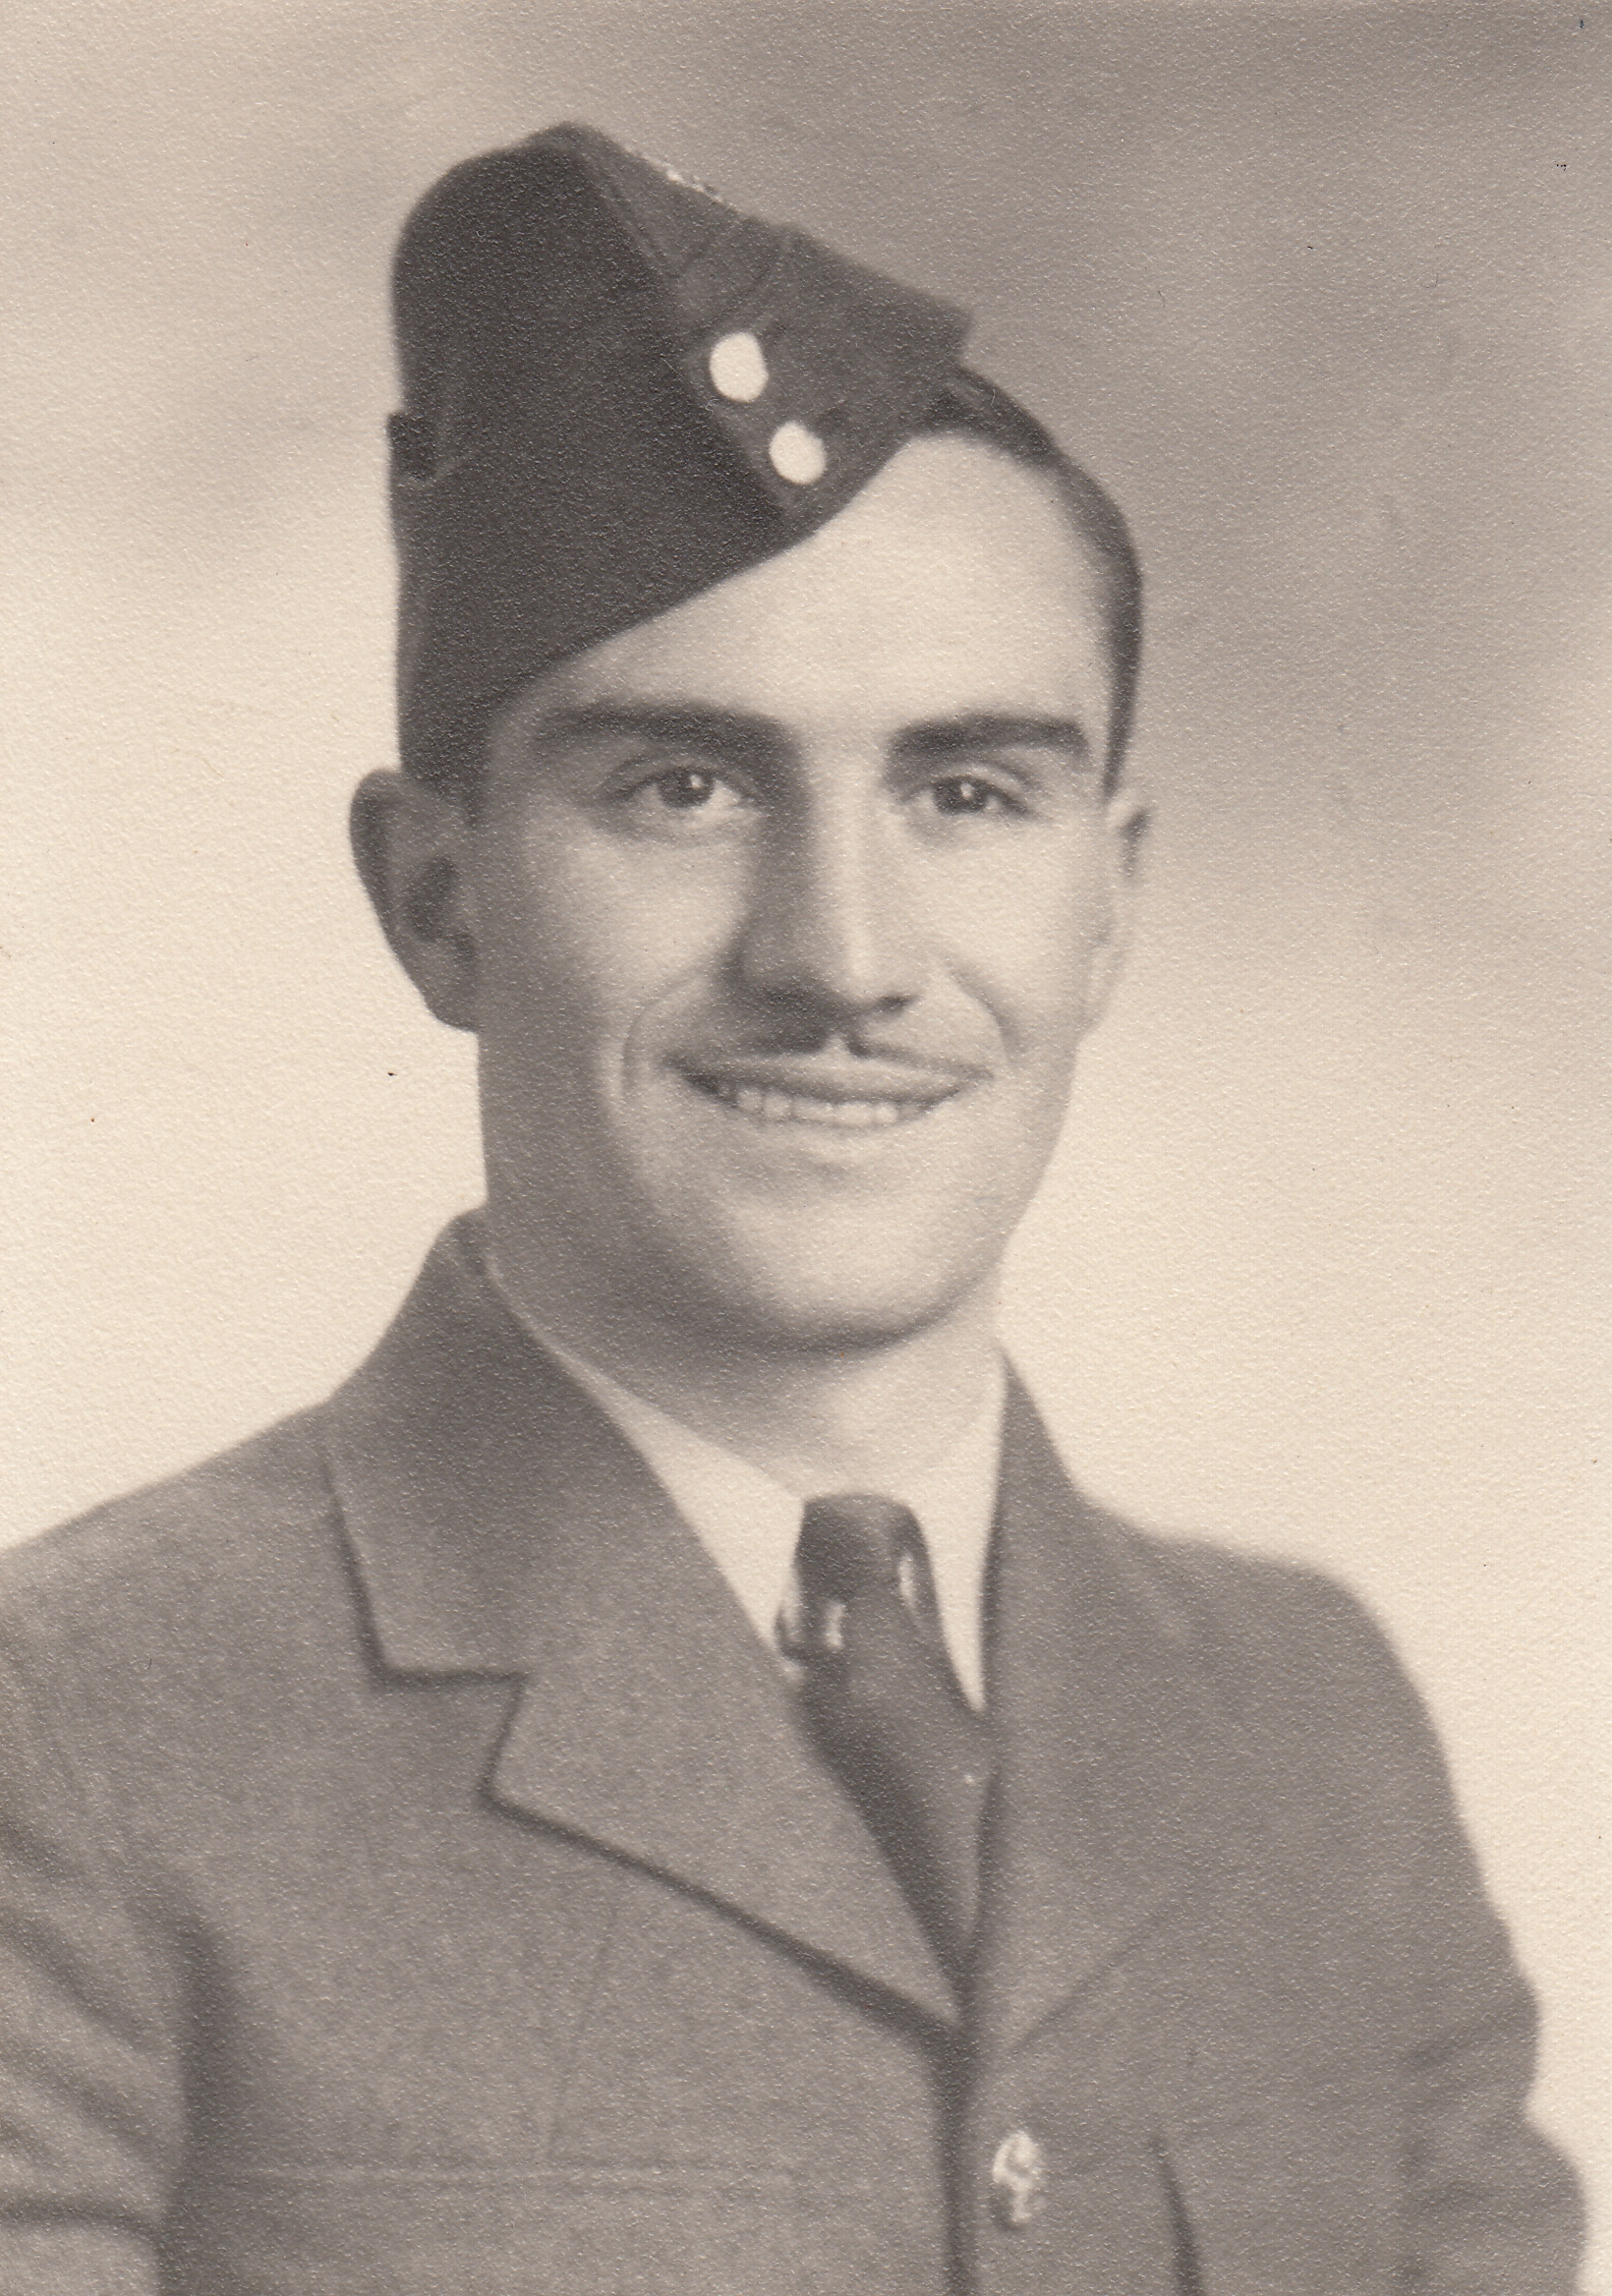 Ronald GibbinsRCAF Bomber Tailgunner, 2 European ToursWW2 - Ronald Gibbins: CXTHM002Ronny survived 2 full tours of duty in the tail position in Europe and was about to engage in a third in the Pacific theatre when his first wife threatened him with divorce. (2 was enough!) Was a part of many high-stress missions including crawling through the aircraft to assist the co-pilot in landing as all others were dead from enemy fire. In 2000 Ron was one of 5 men known alive in North America who served 2 tours in that position. Ron passed in 2002. We honour his memory and fighting spirit.